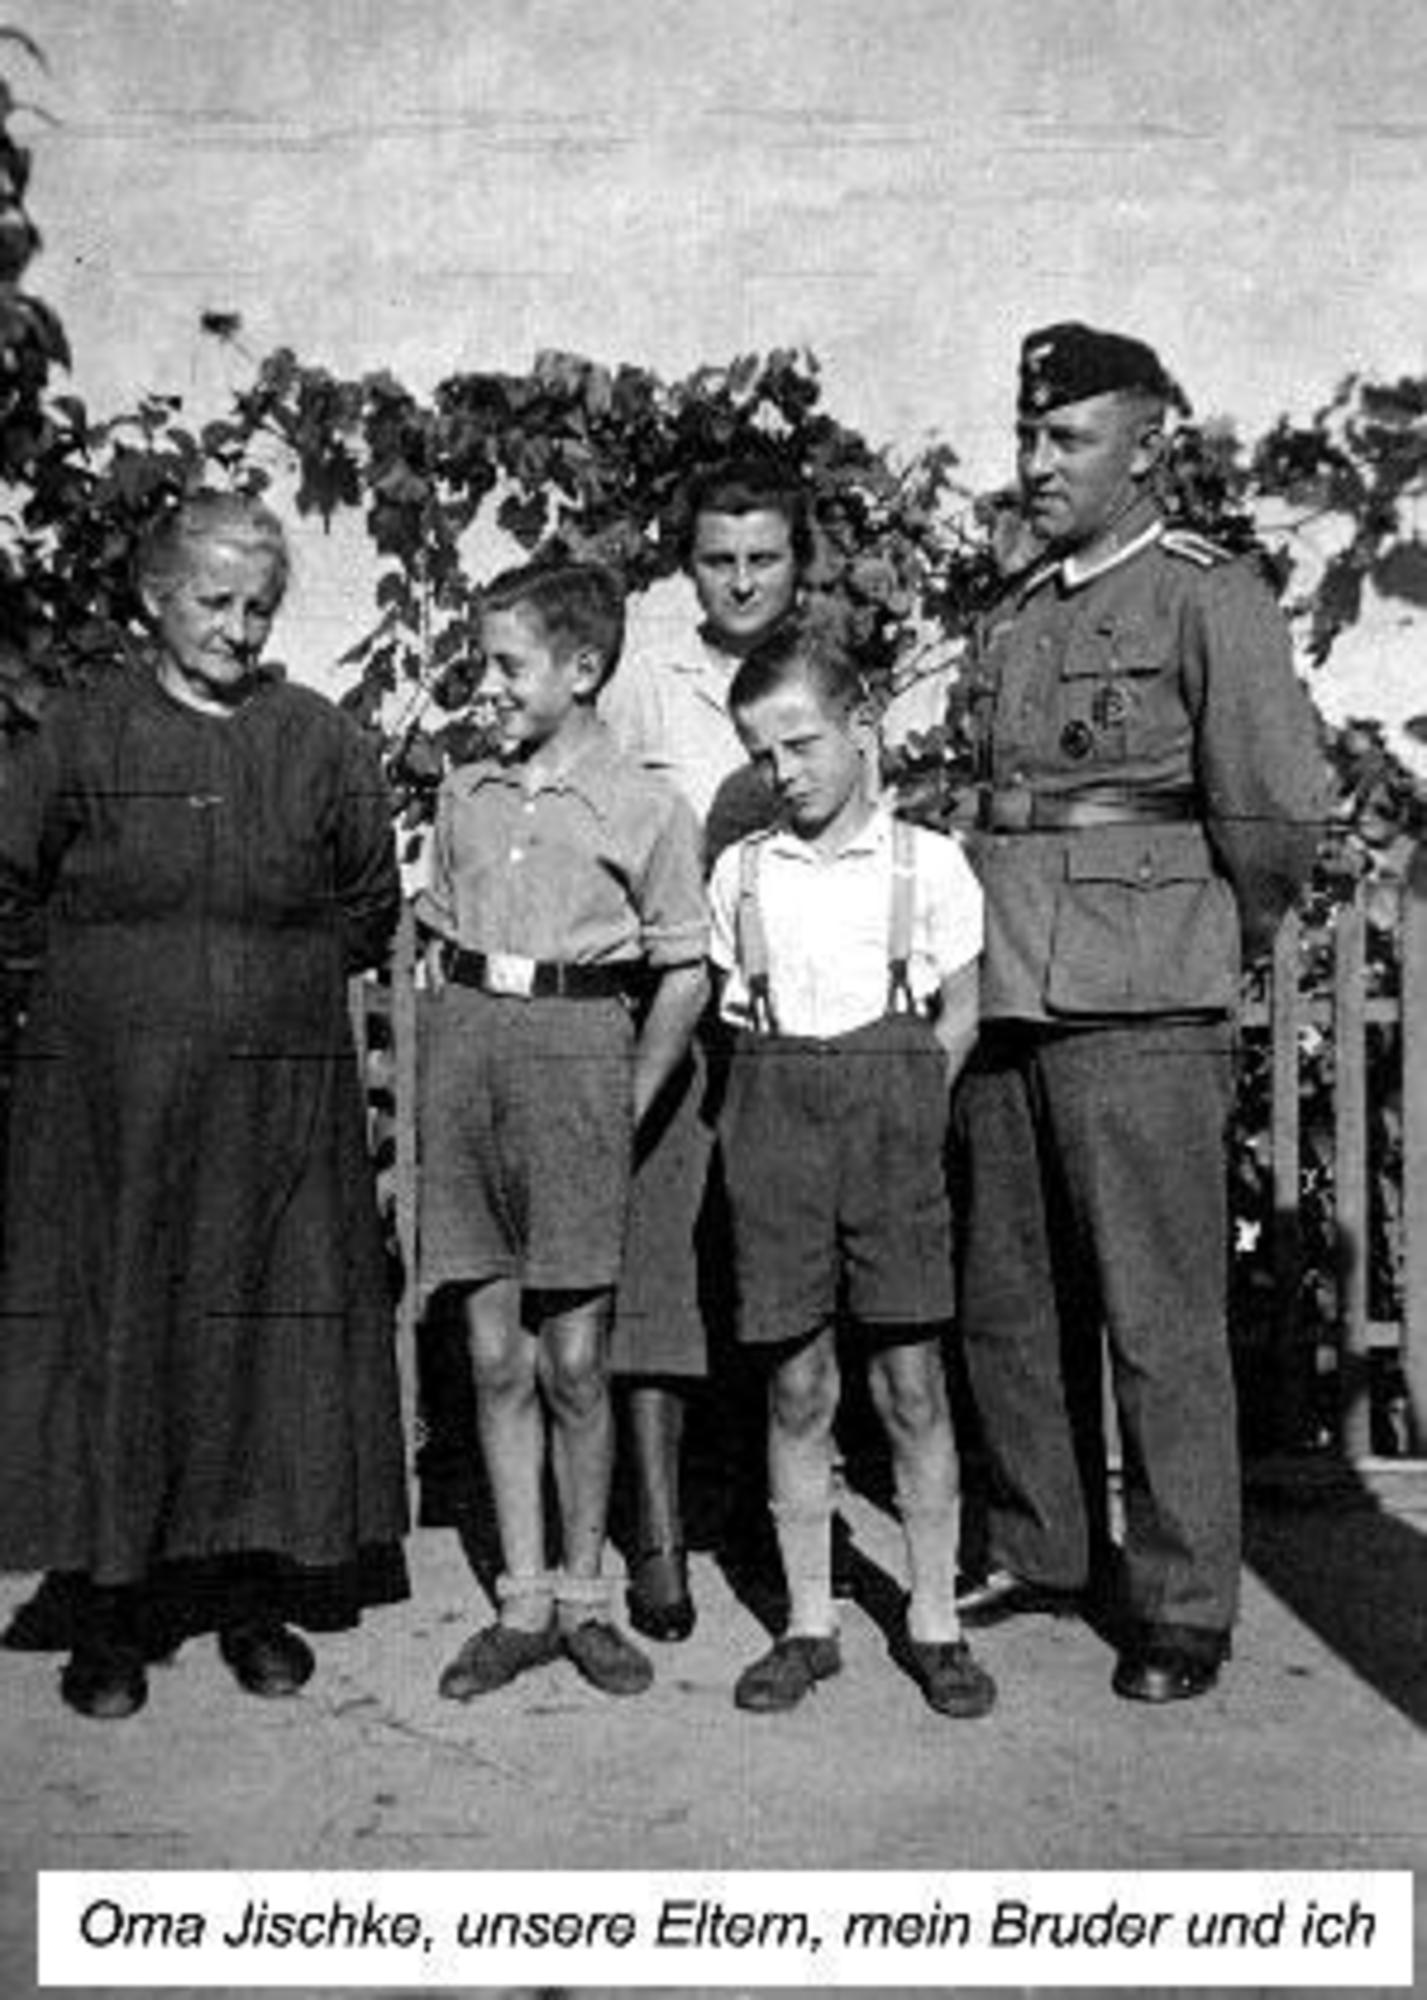 Willi Gerlach with his borther Kurt, parents and grandmother Jischke